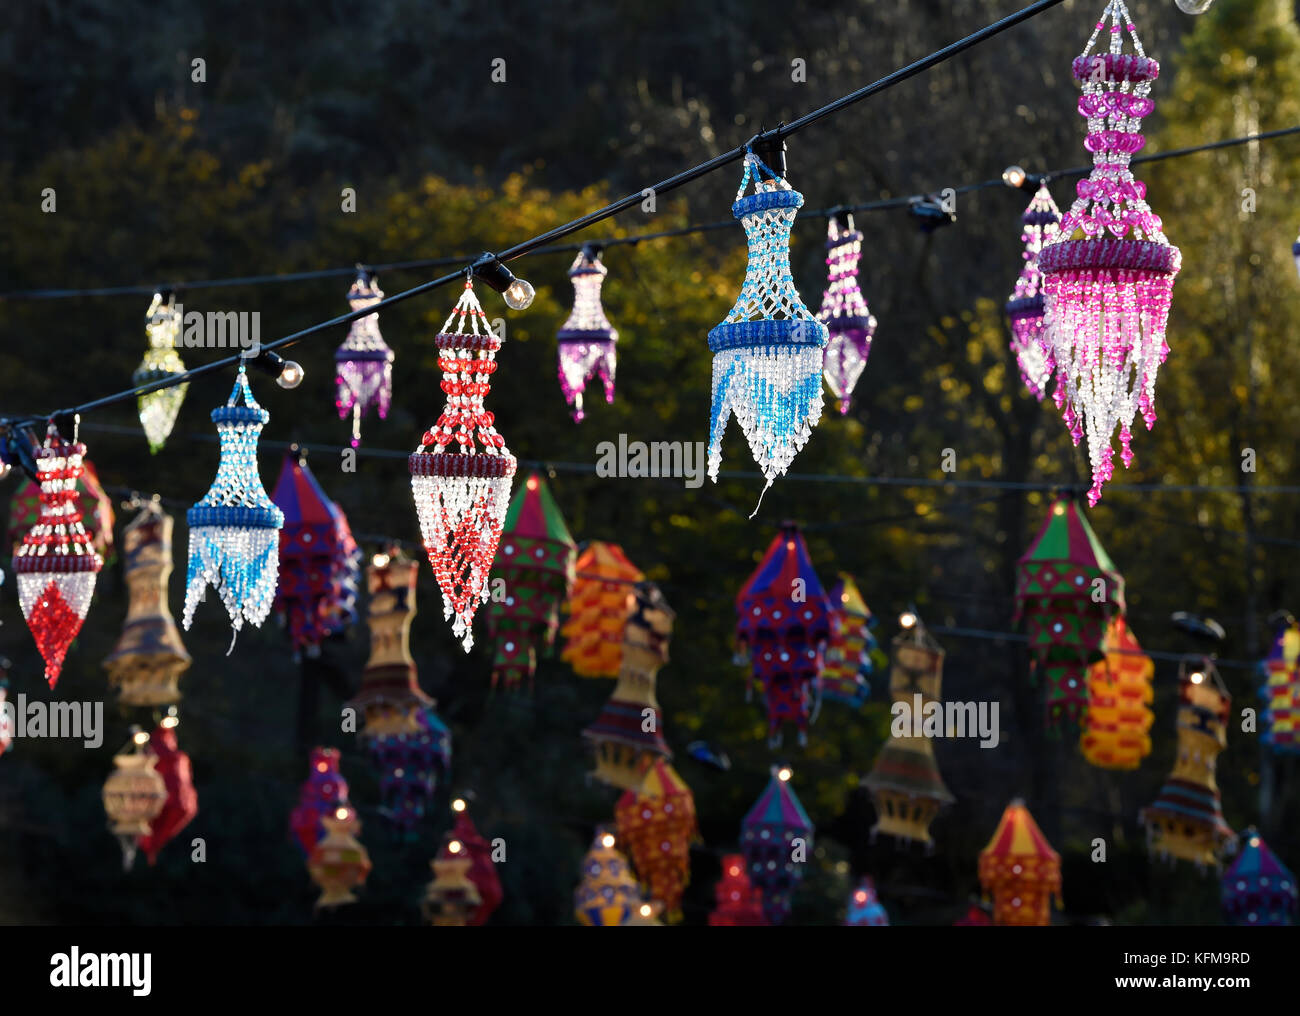 Coloured lanterns hang up in Princes Street Gardens, Edinburgh during the annual Diwali celebrations. - Stock Image